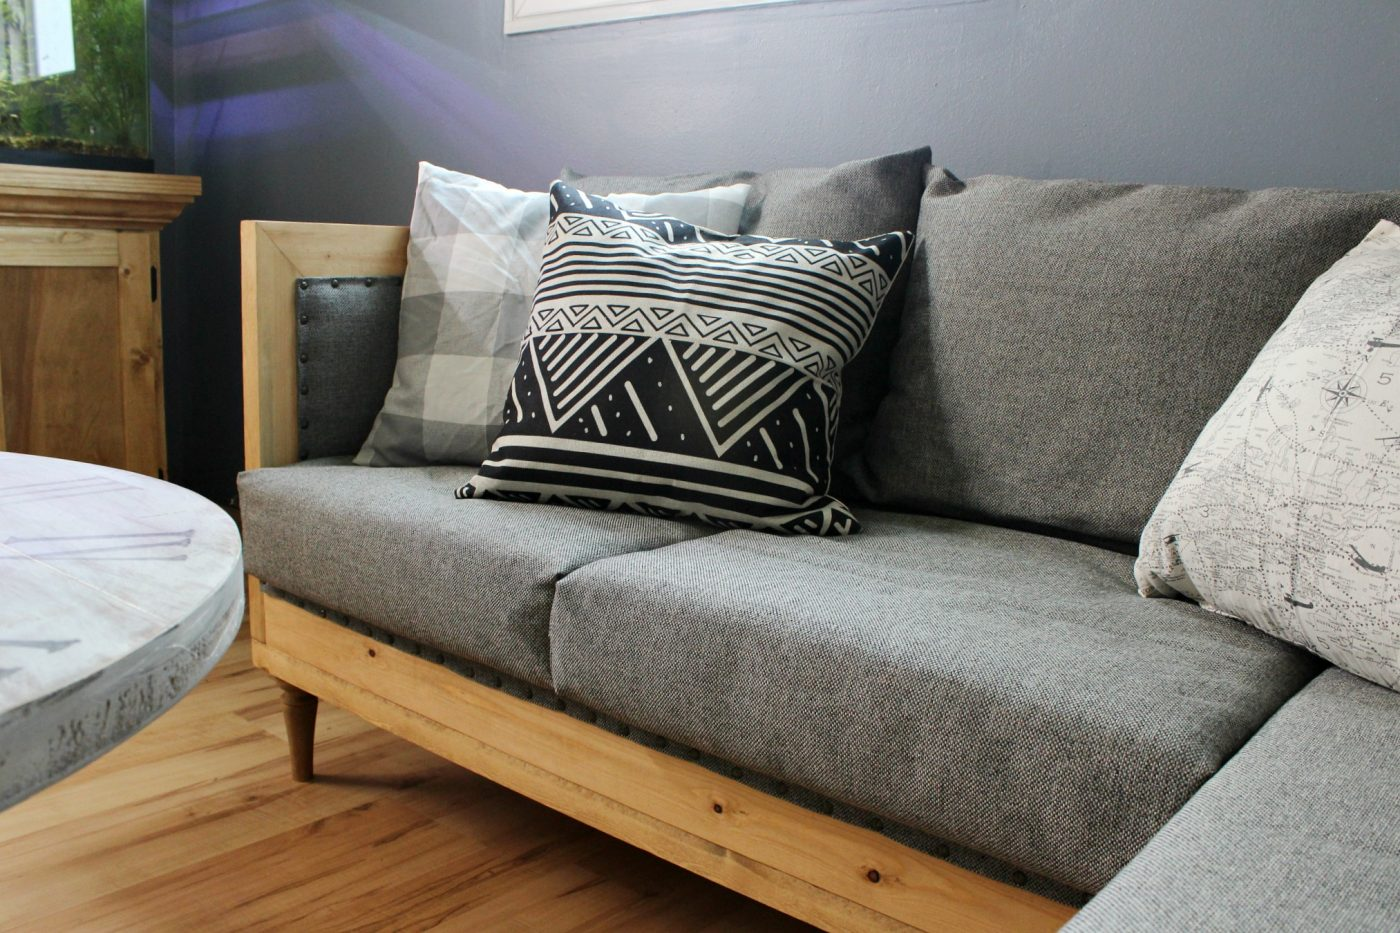 Diy Couch How To Build And Upholster Your Own Sofa